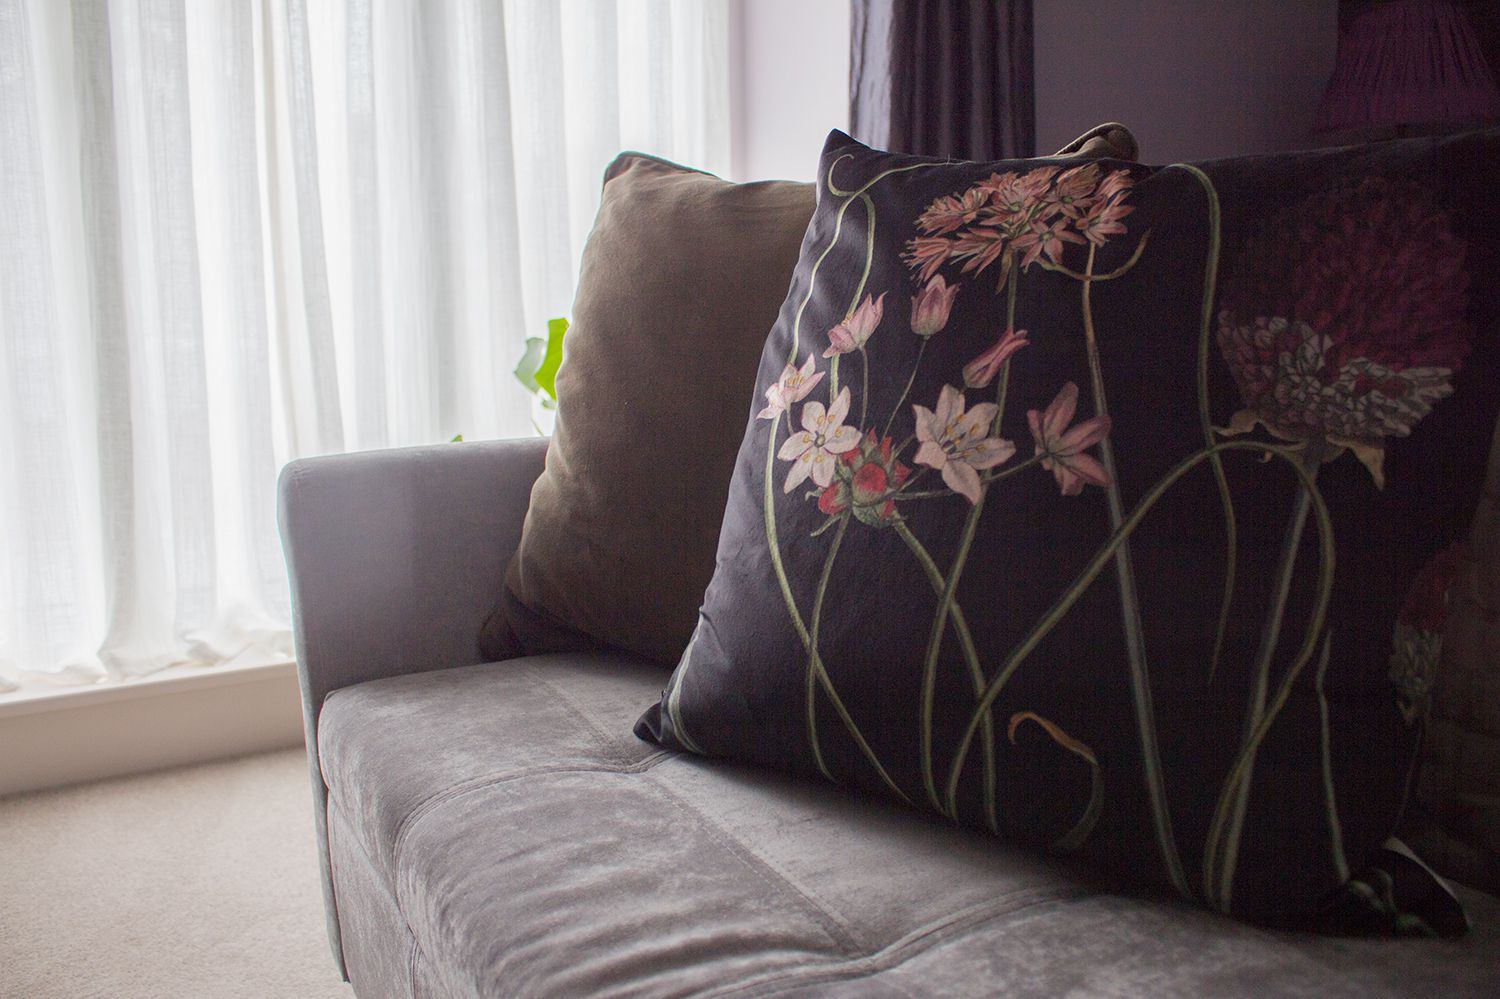 A close up of the new velvet cushions on the upholstered bench with the new sheer curtains behind.